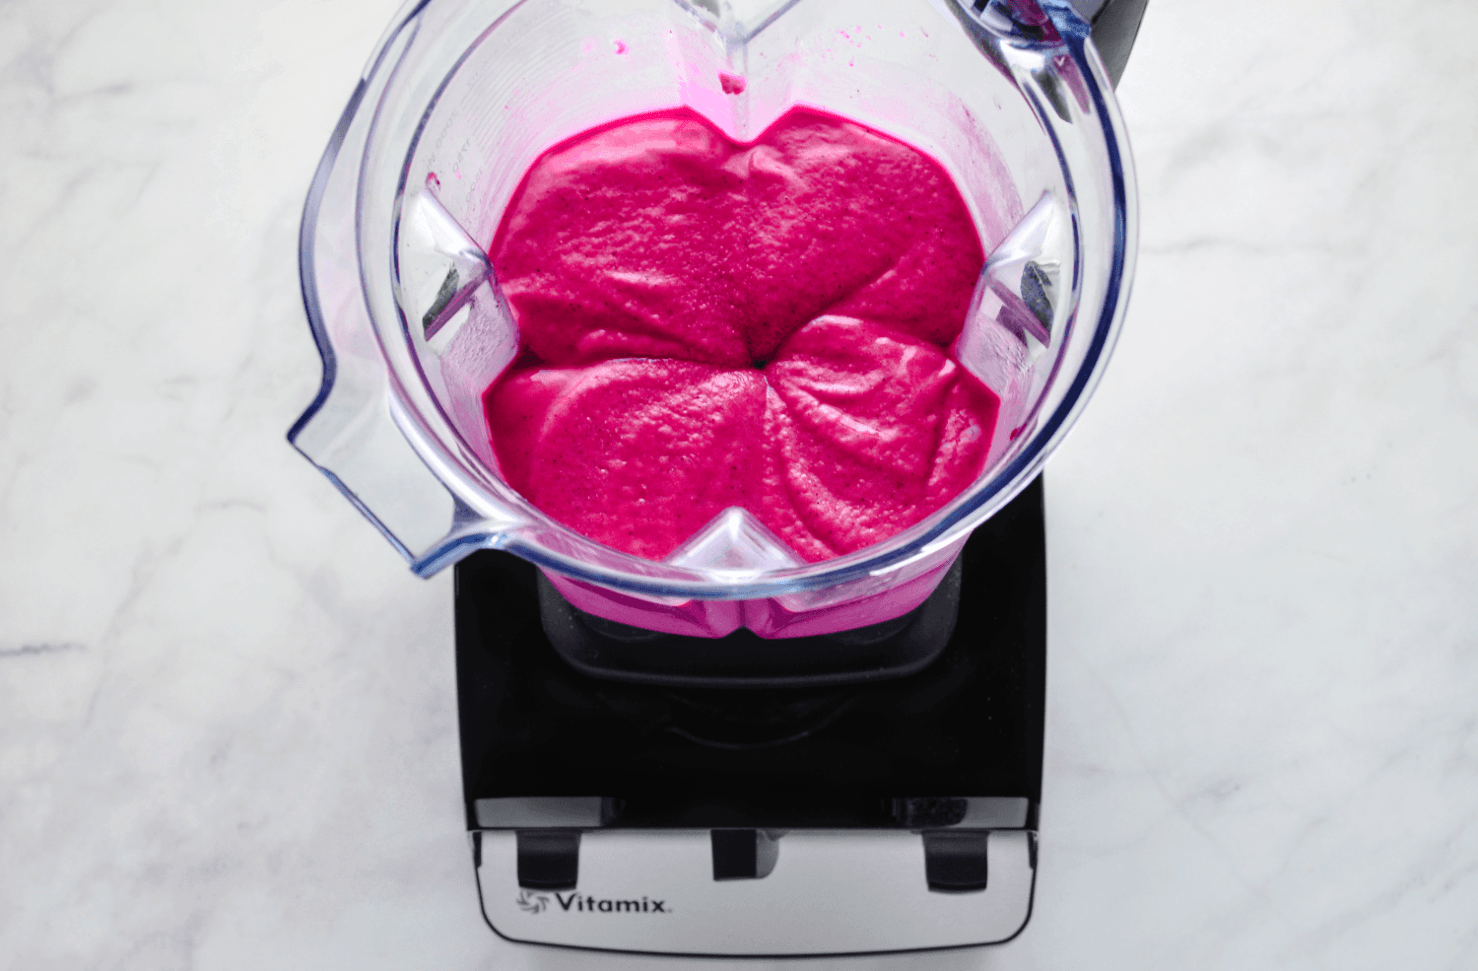 Vitamix creates thick and creamy pitaya ice cream